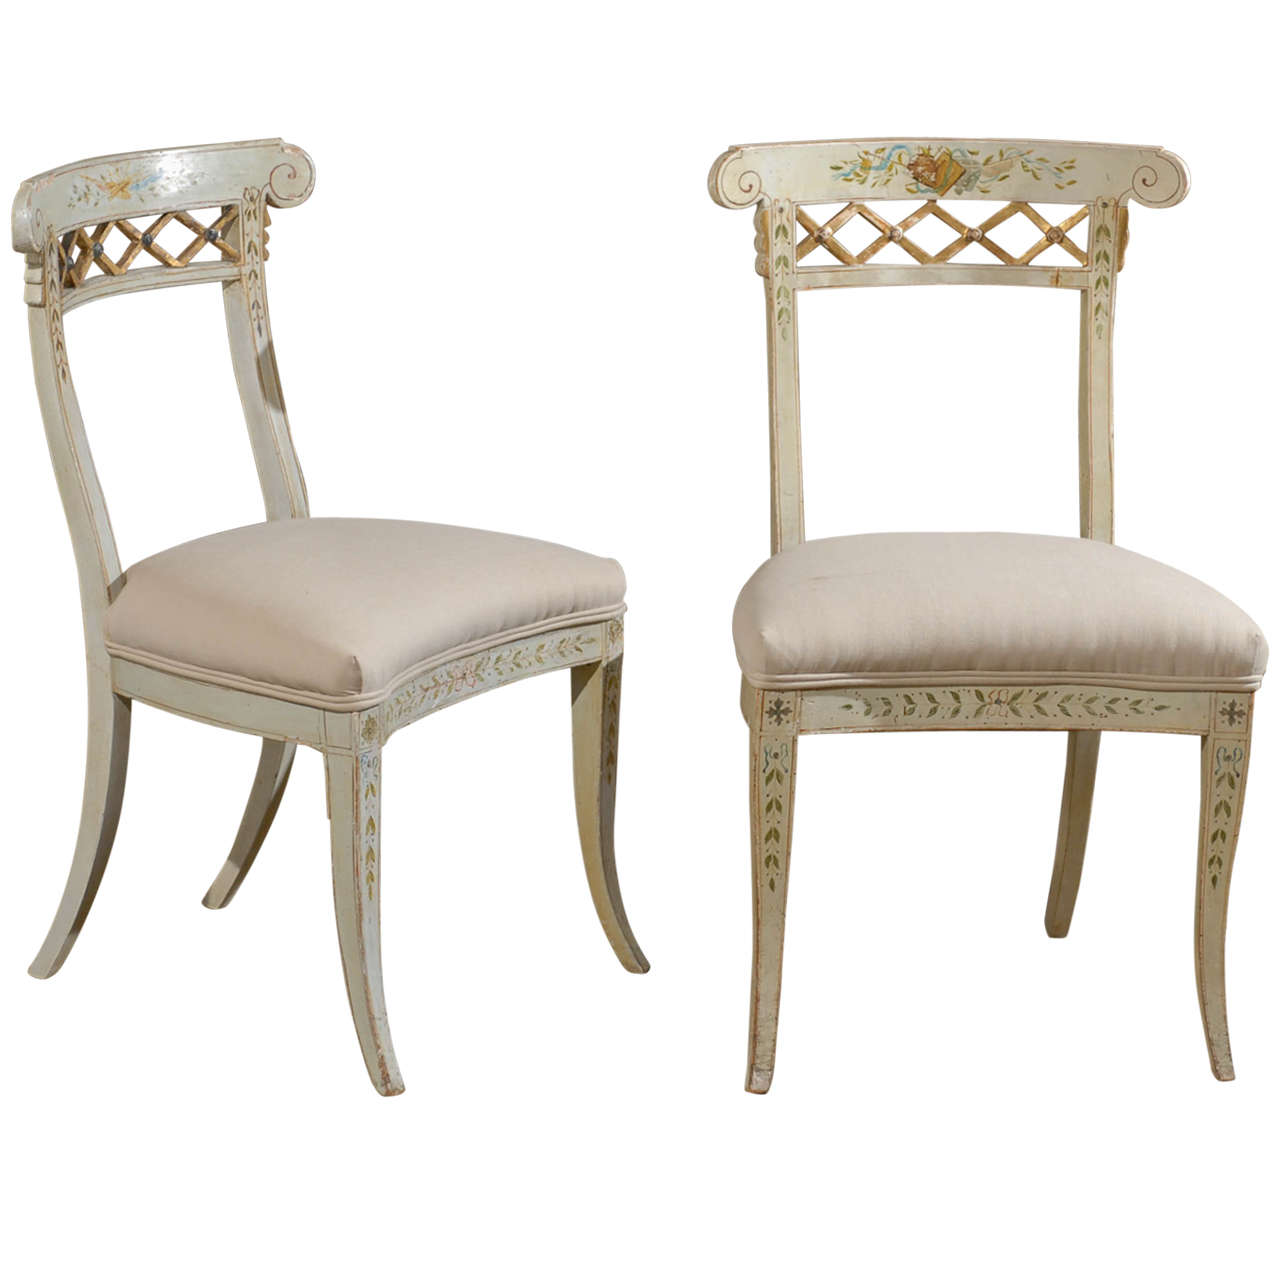 Set of Four Italian 1790s Neoclassical Period Music Chairs with Gilded Trellis